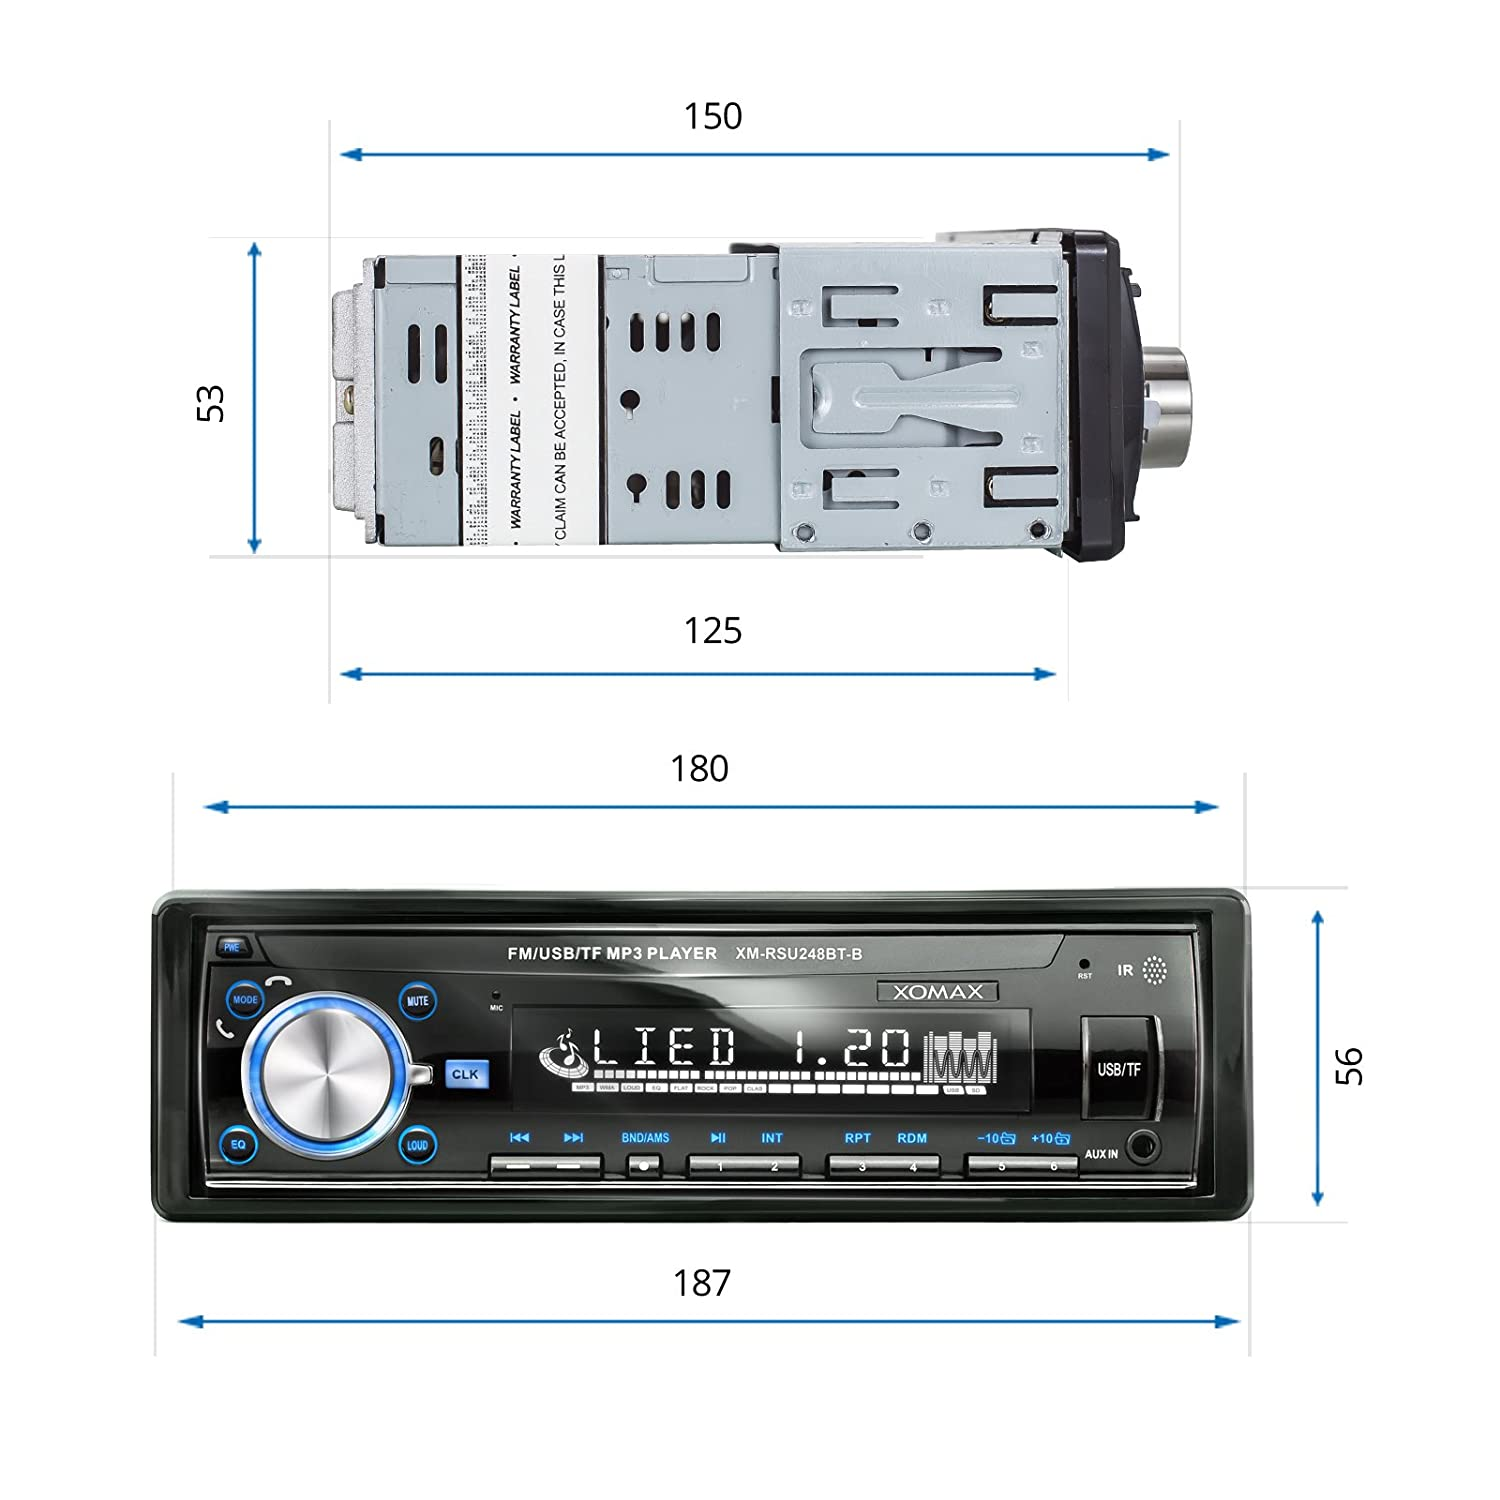 XOMAX XM-RSU248BT-B Autoradio mit Bluetooth: Amazon.de: Elektronik